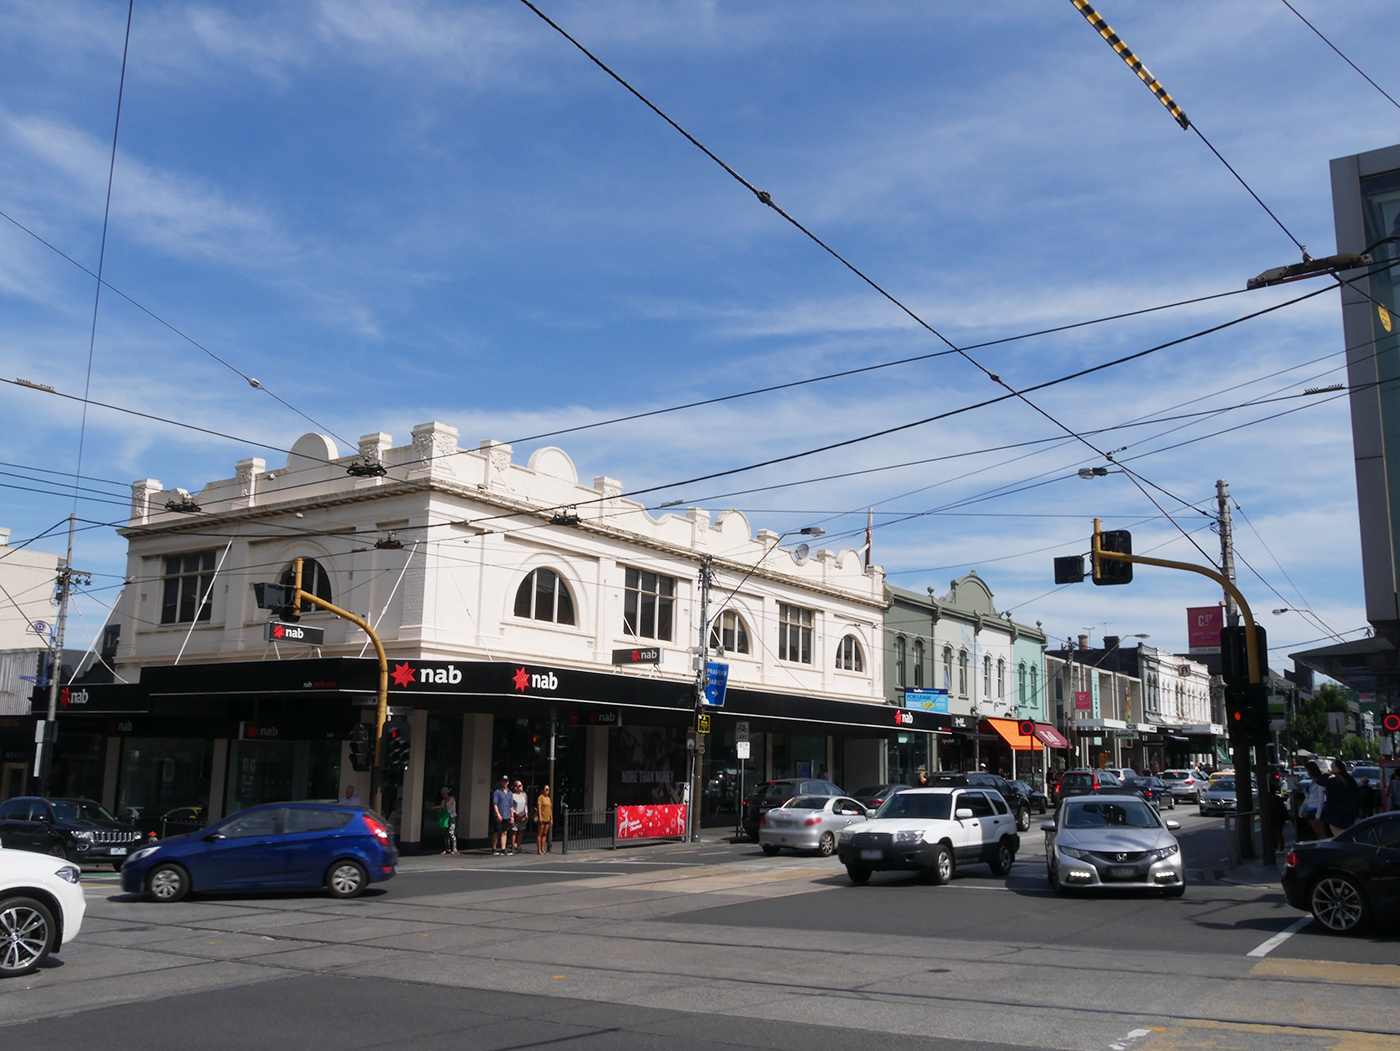 Winkelstraten, South Yarra, Melbourne